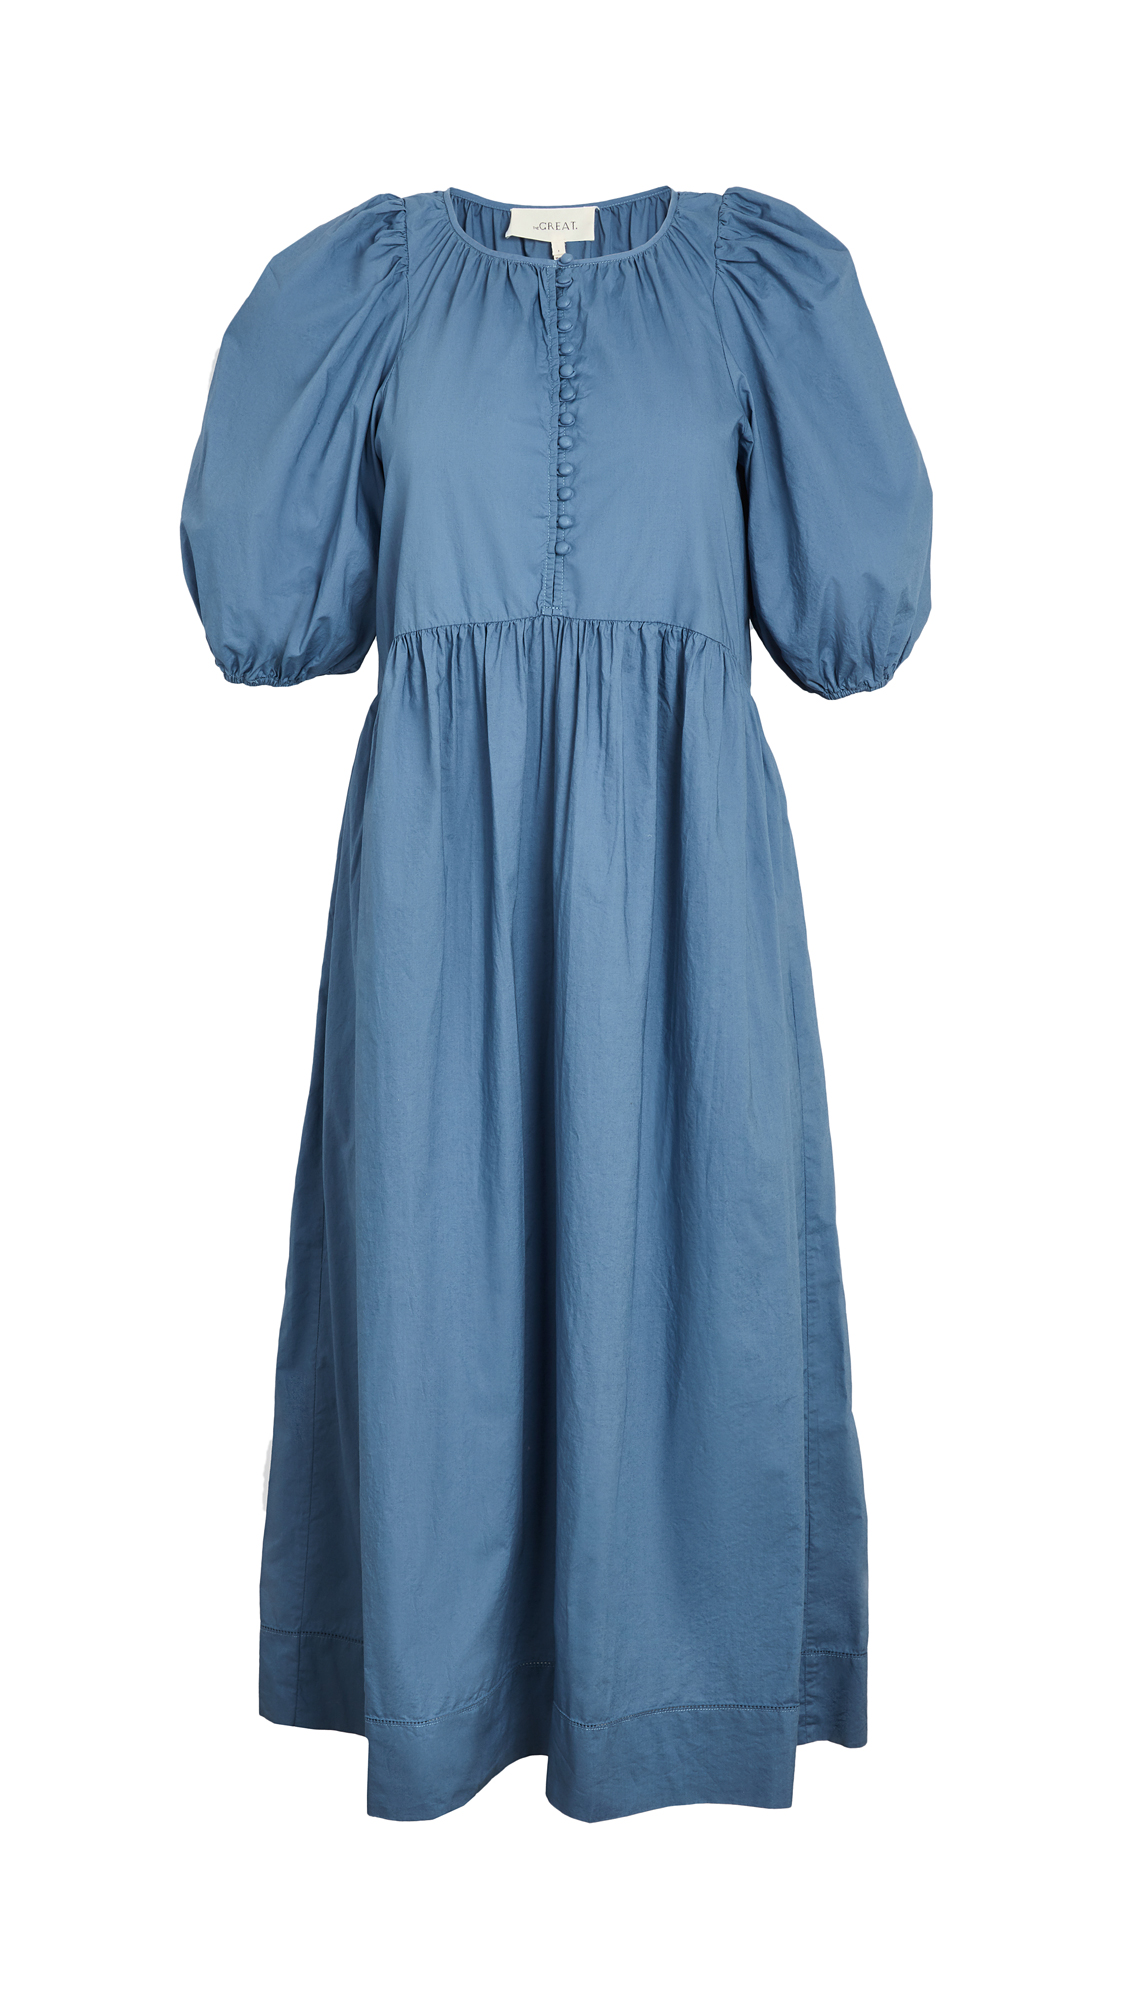 THE GREAT. The Ravine Dress